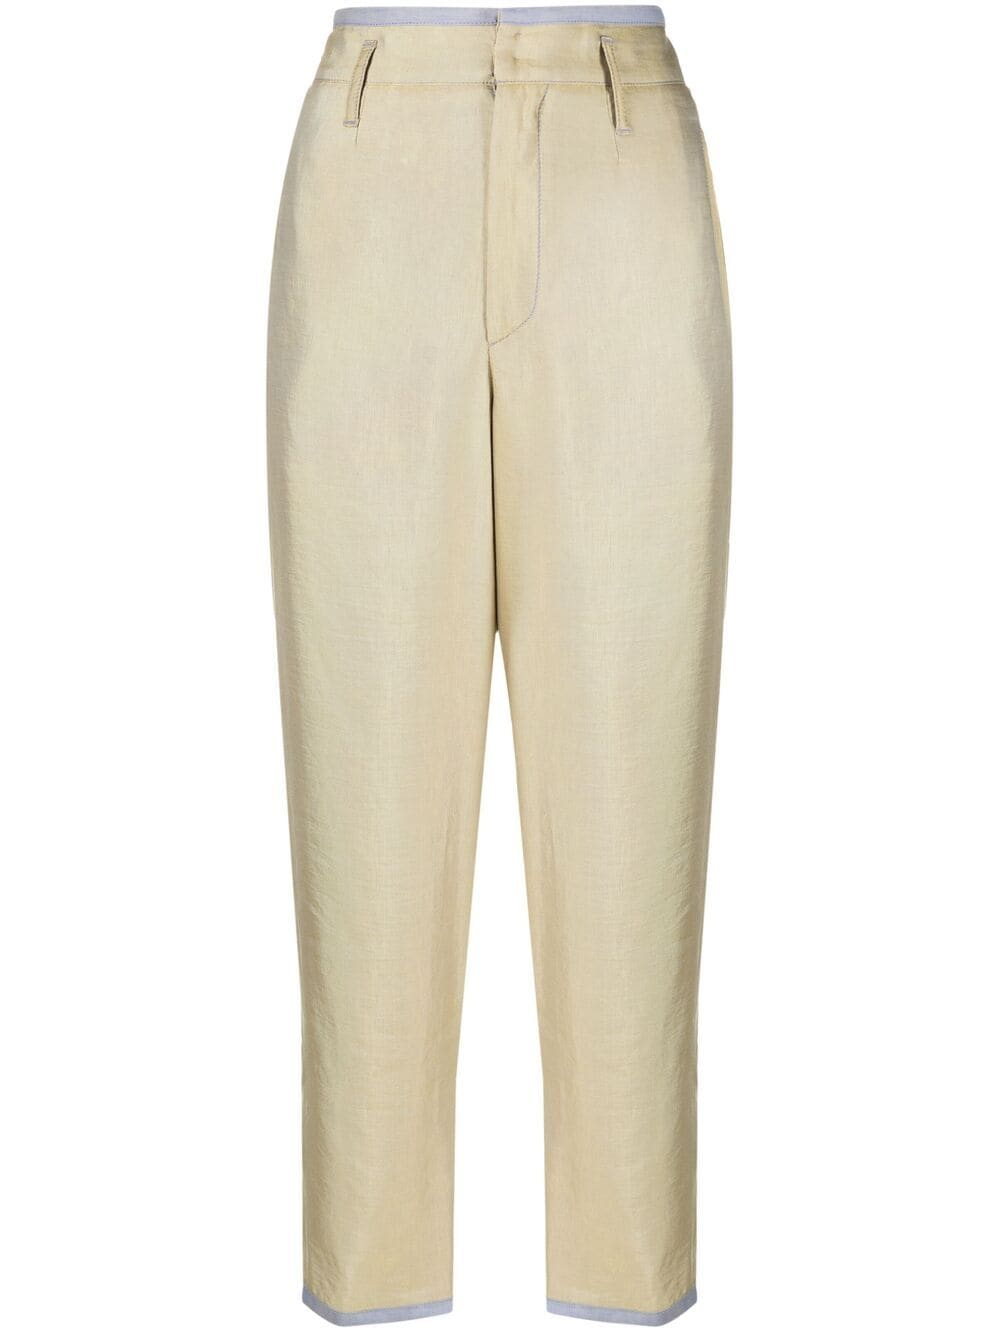 Gold coloured cotton high waist cropped trousers  FORTE_FORTE |  | 8209CEDRO